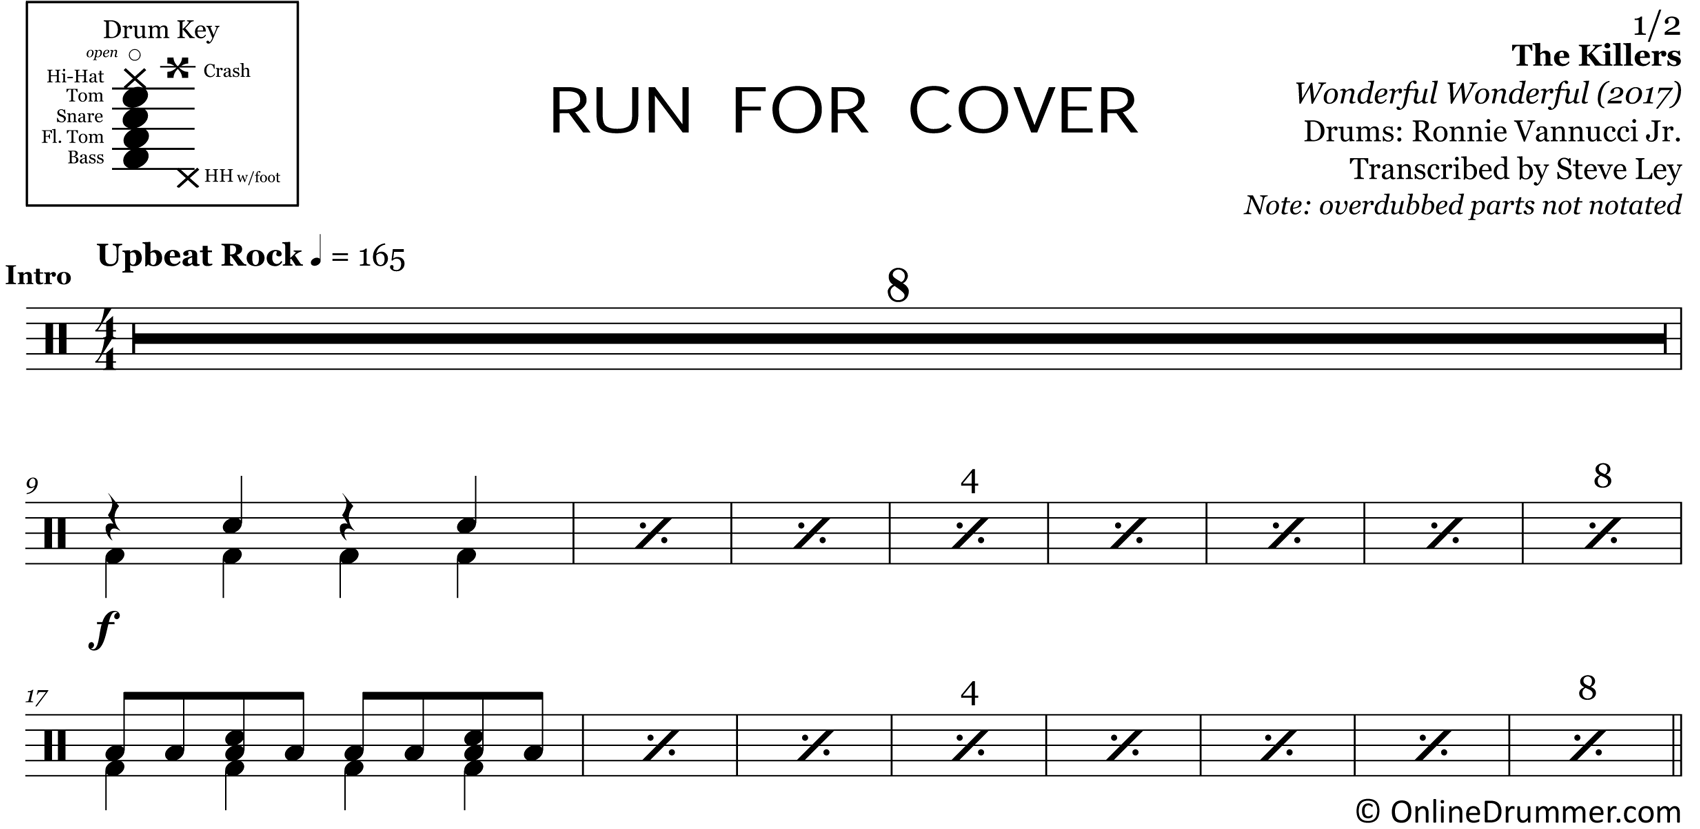 Run For Cover - The Killers - Drum Sheet Music